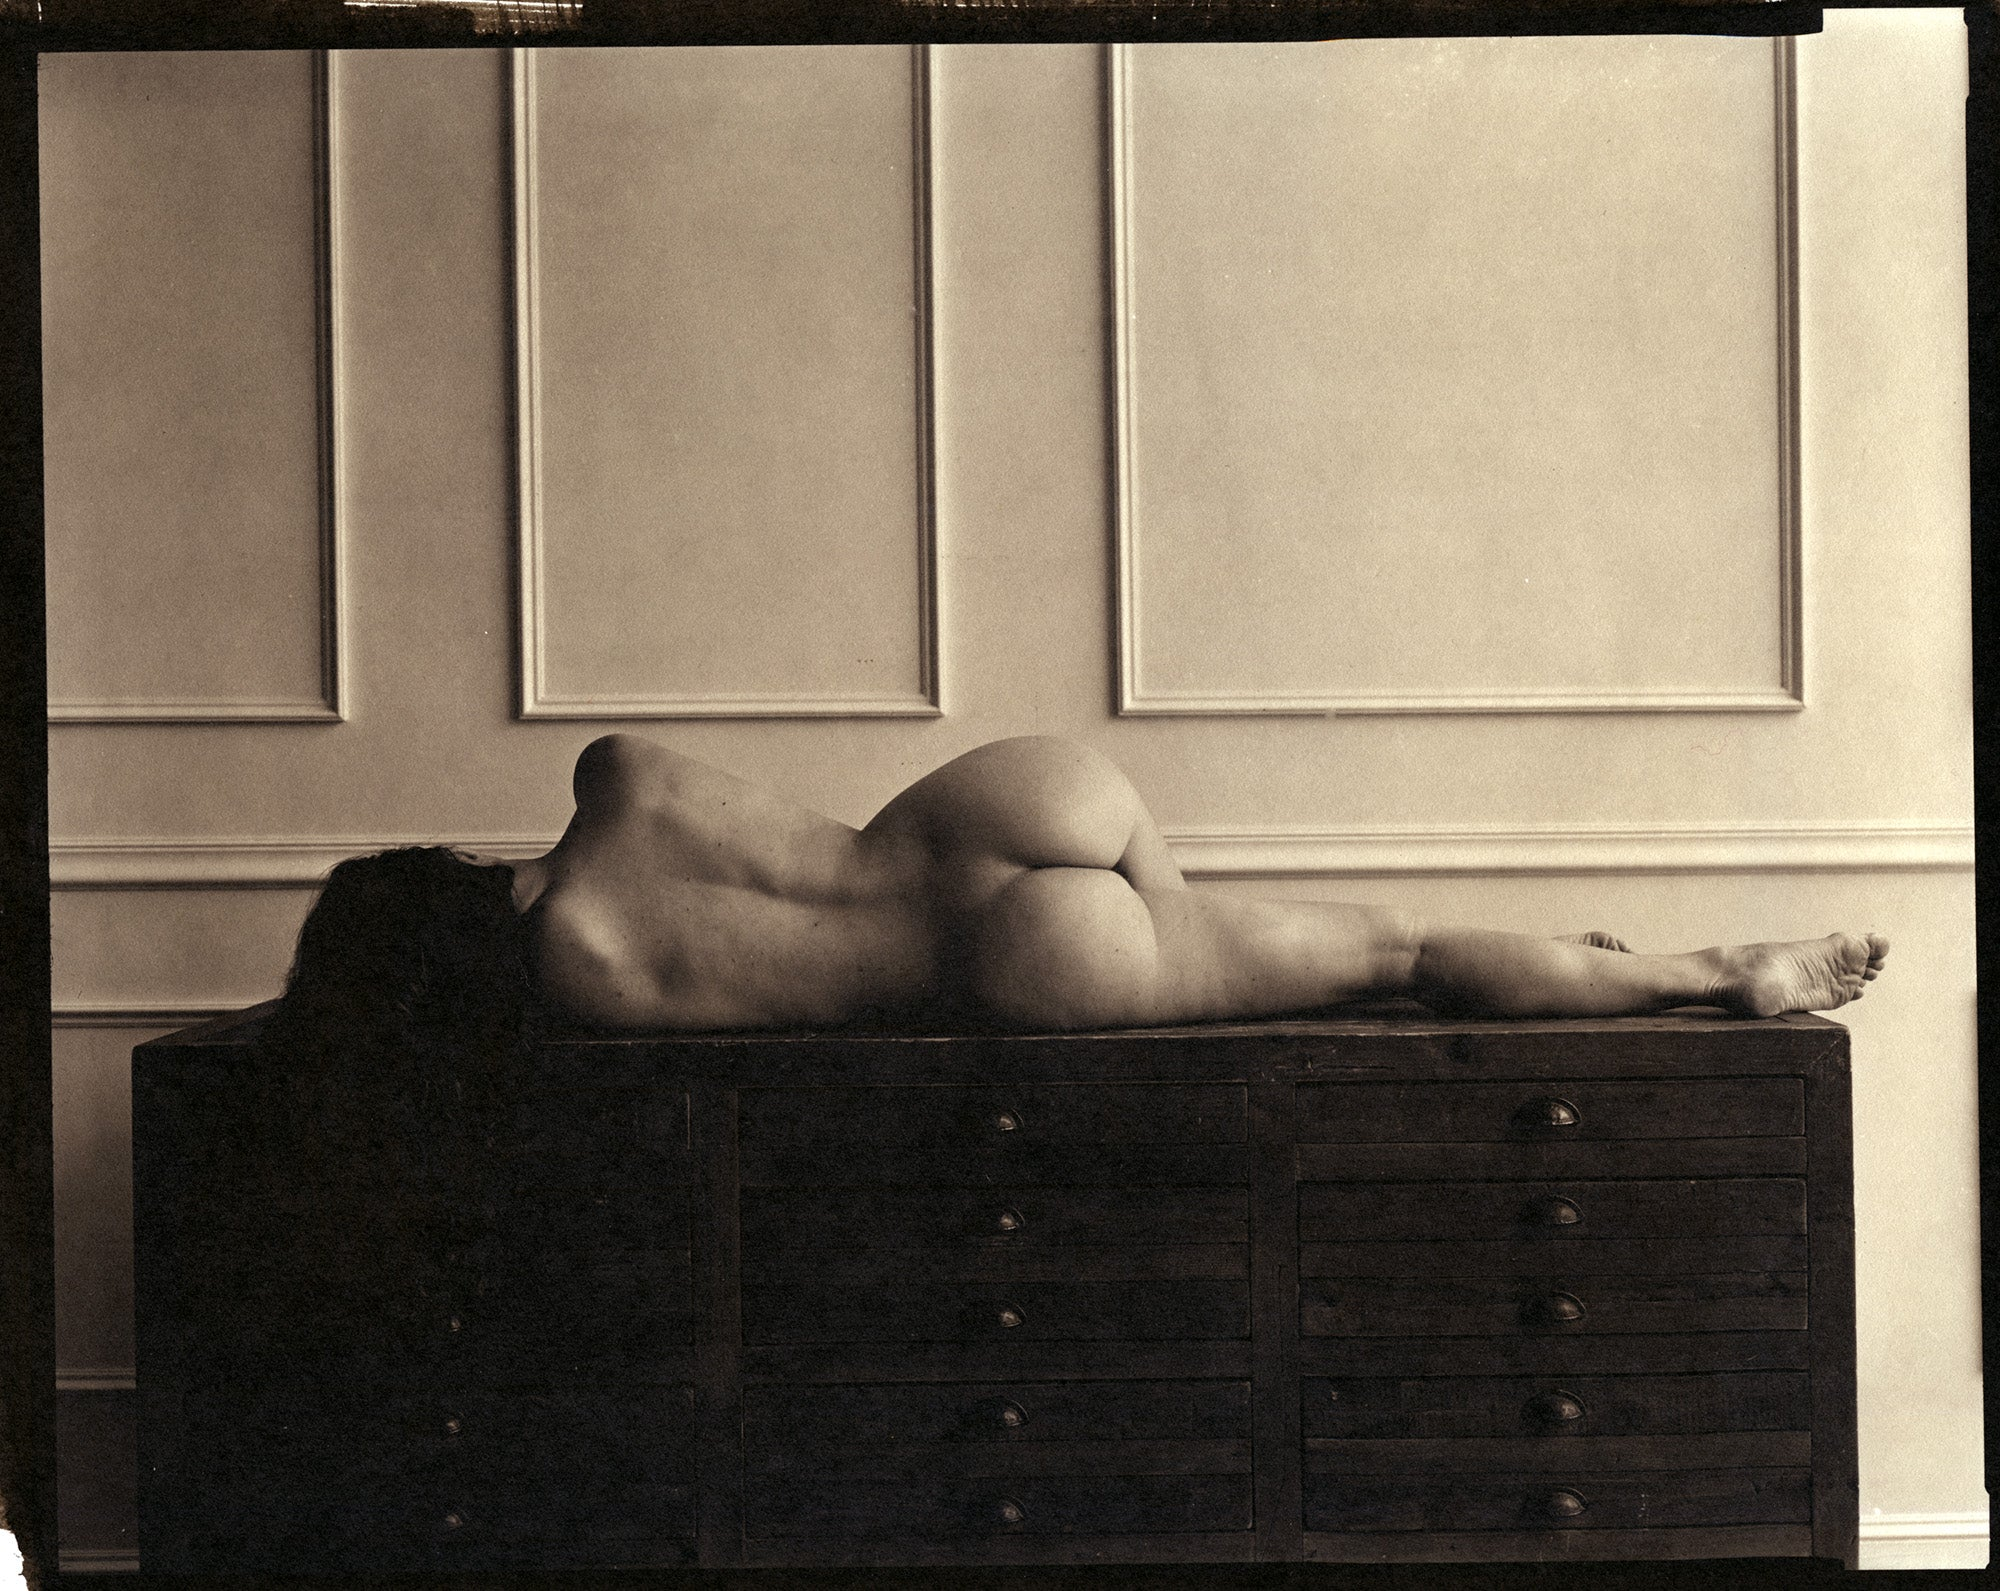 Reclined nude 2020 #2